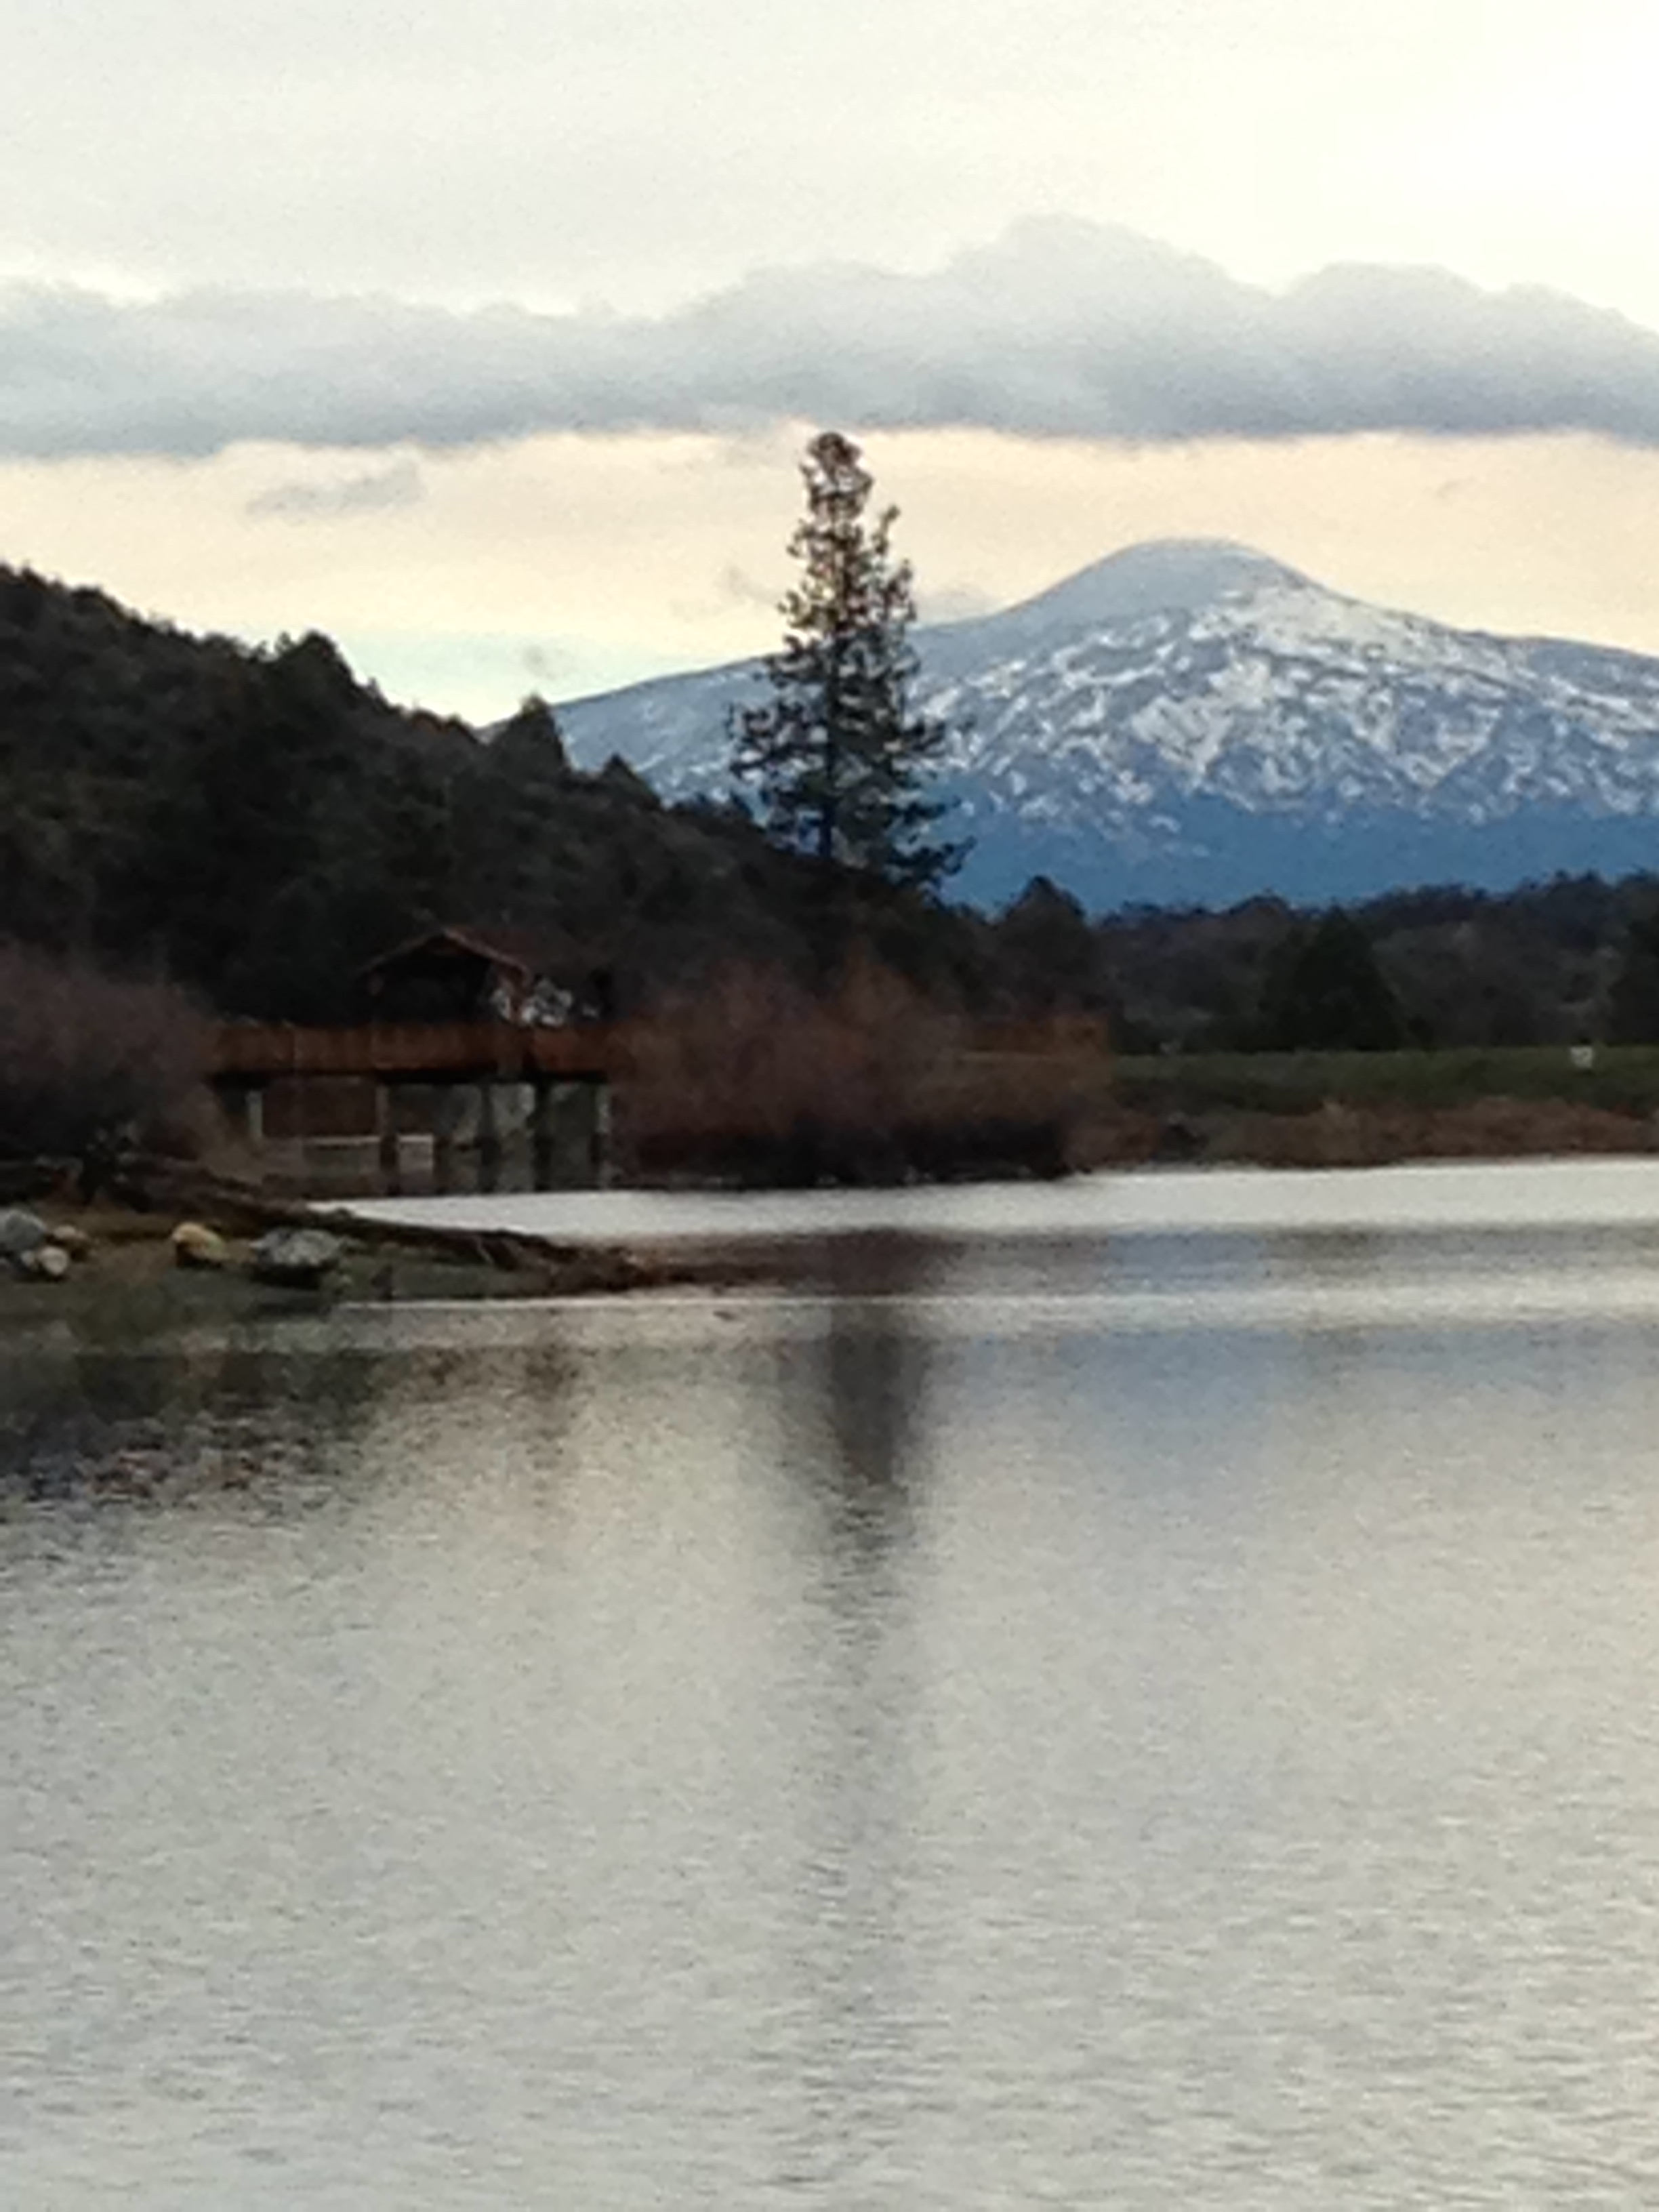 Mt. Shasta as seen from Greenhorn Park in Yreka, CA